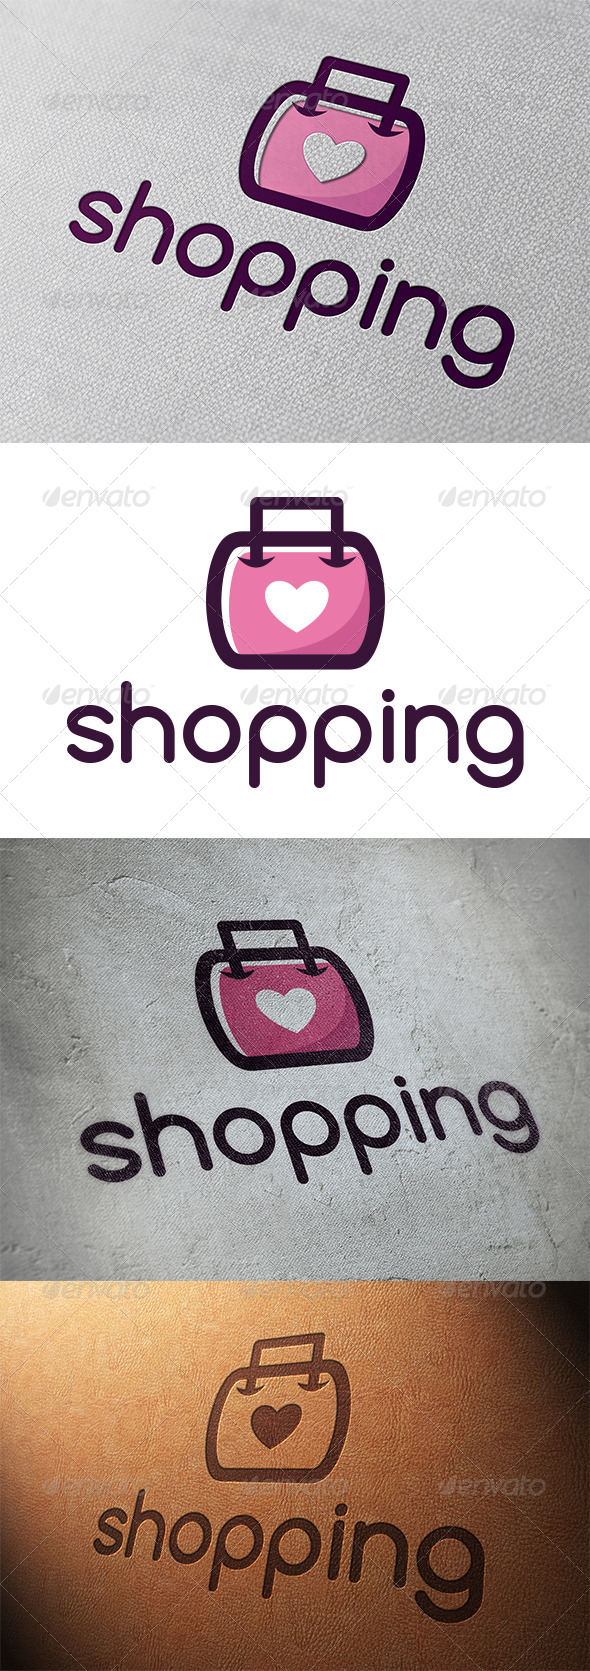 Love Shopping Logo Template By Bosstwinsmusic Graphicriver